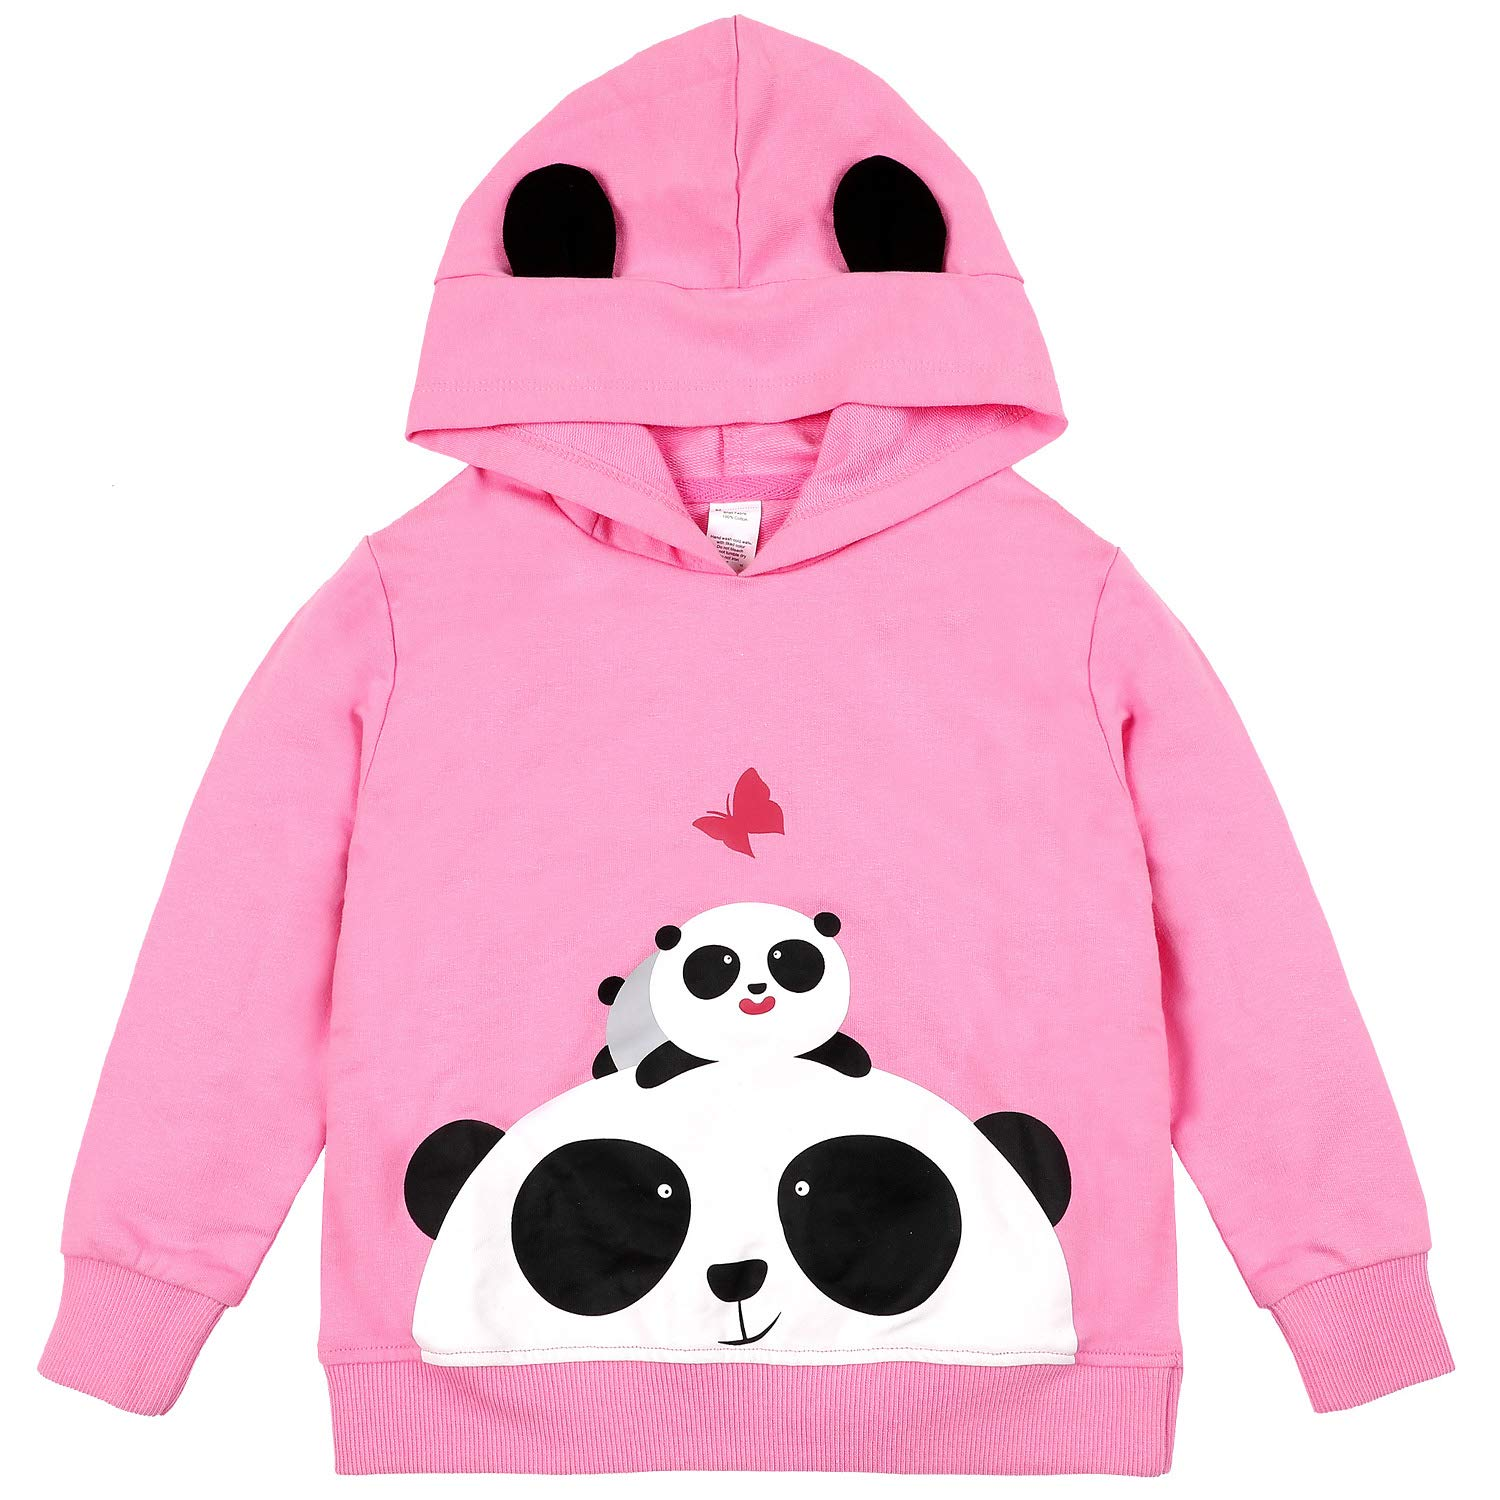 Sociala Pink Hooded Sweatshirt Toddler Little Girl 100 Cotton Hoodies Pullover 6